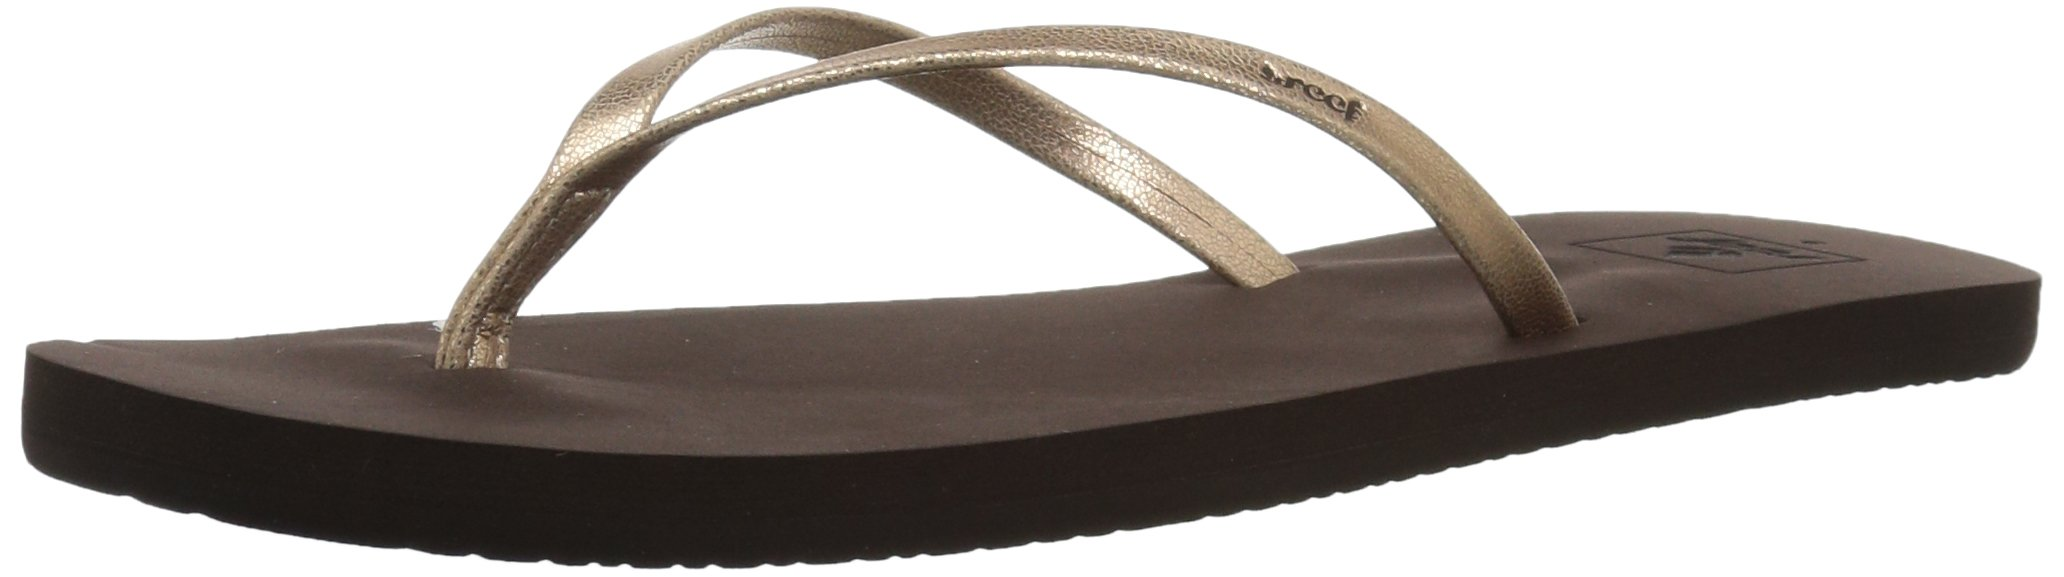 Reef Women's Bliss Nights Flip Flop, Rose Gold, 11 M US